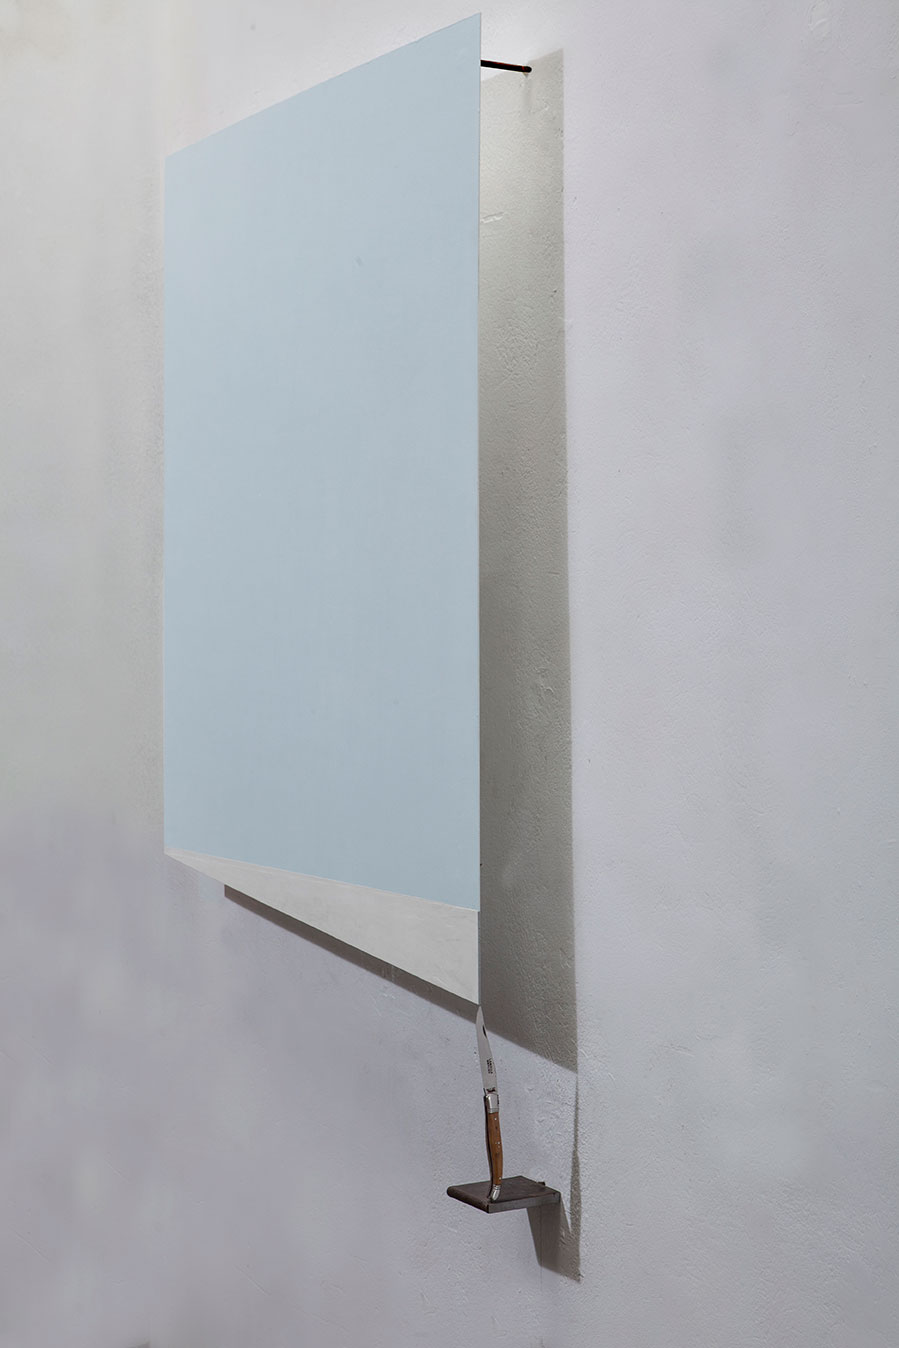 3.'Untitled #13%22, 2015_acrylic and epoxi color on metal sheet,110x100cm_sideC.jpg